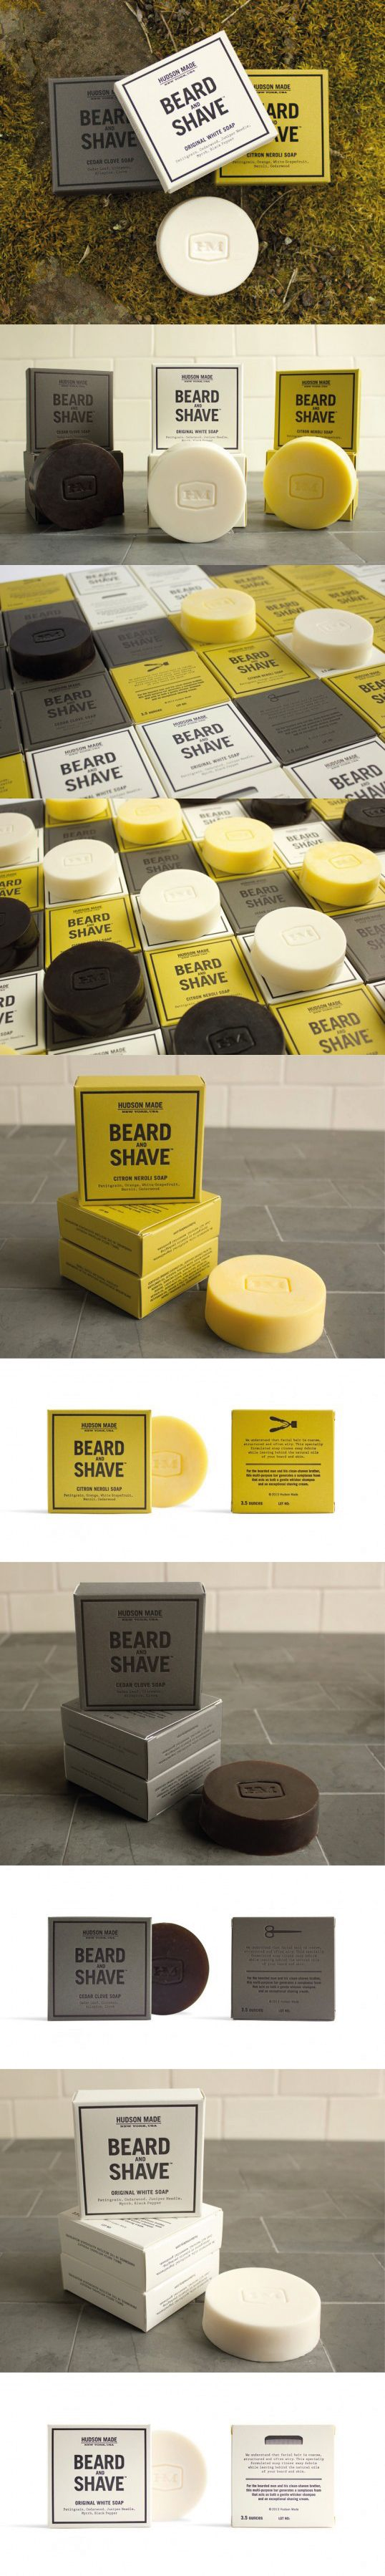 Beard & Shave soap #packaging design by Hudson Made